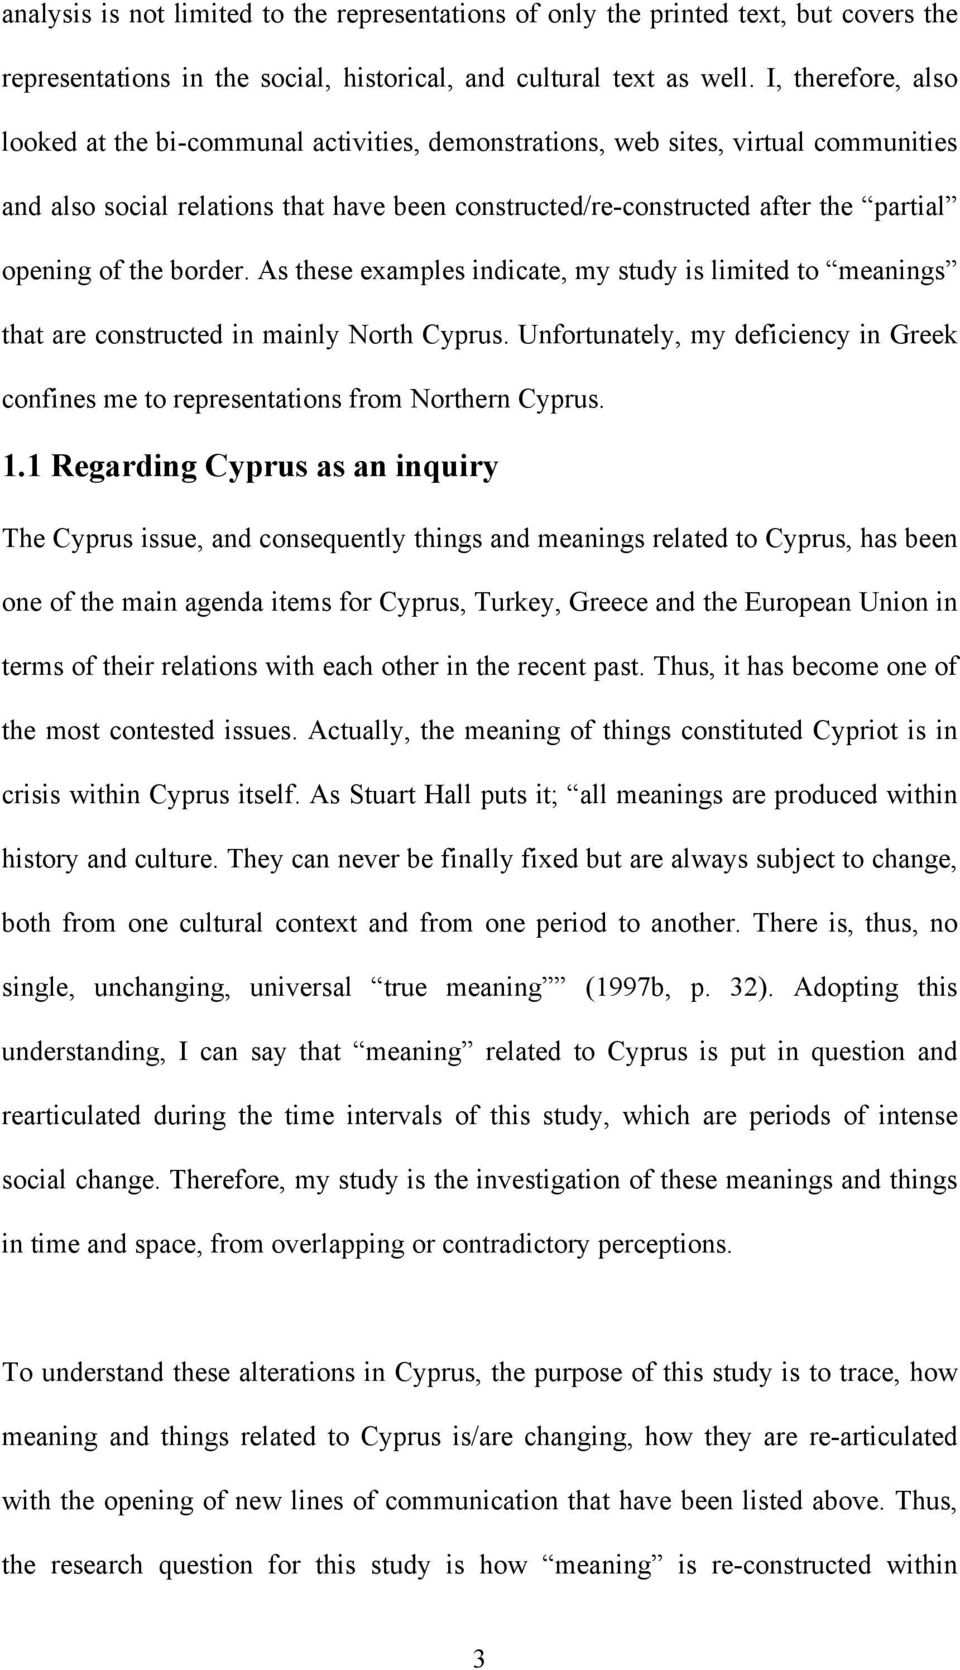 of the border. As these examples indicate, my study is limited to meanings that are constructed in mainly North Cyprus.